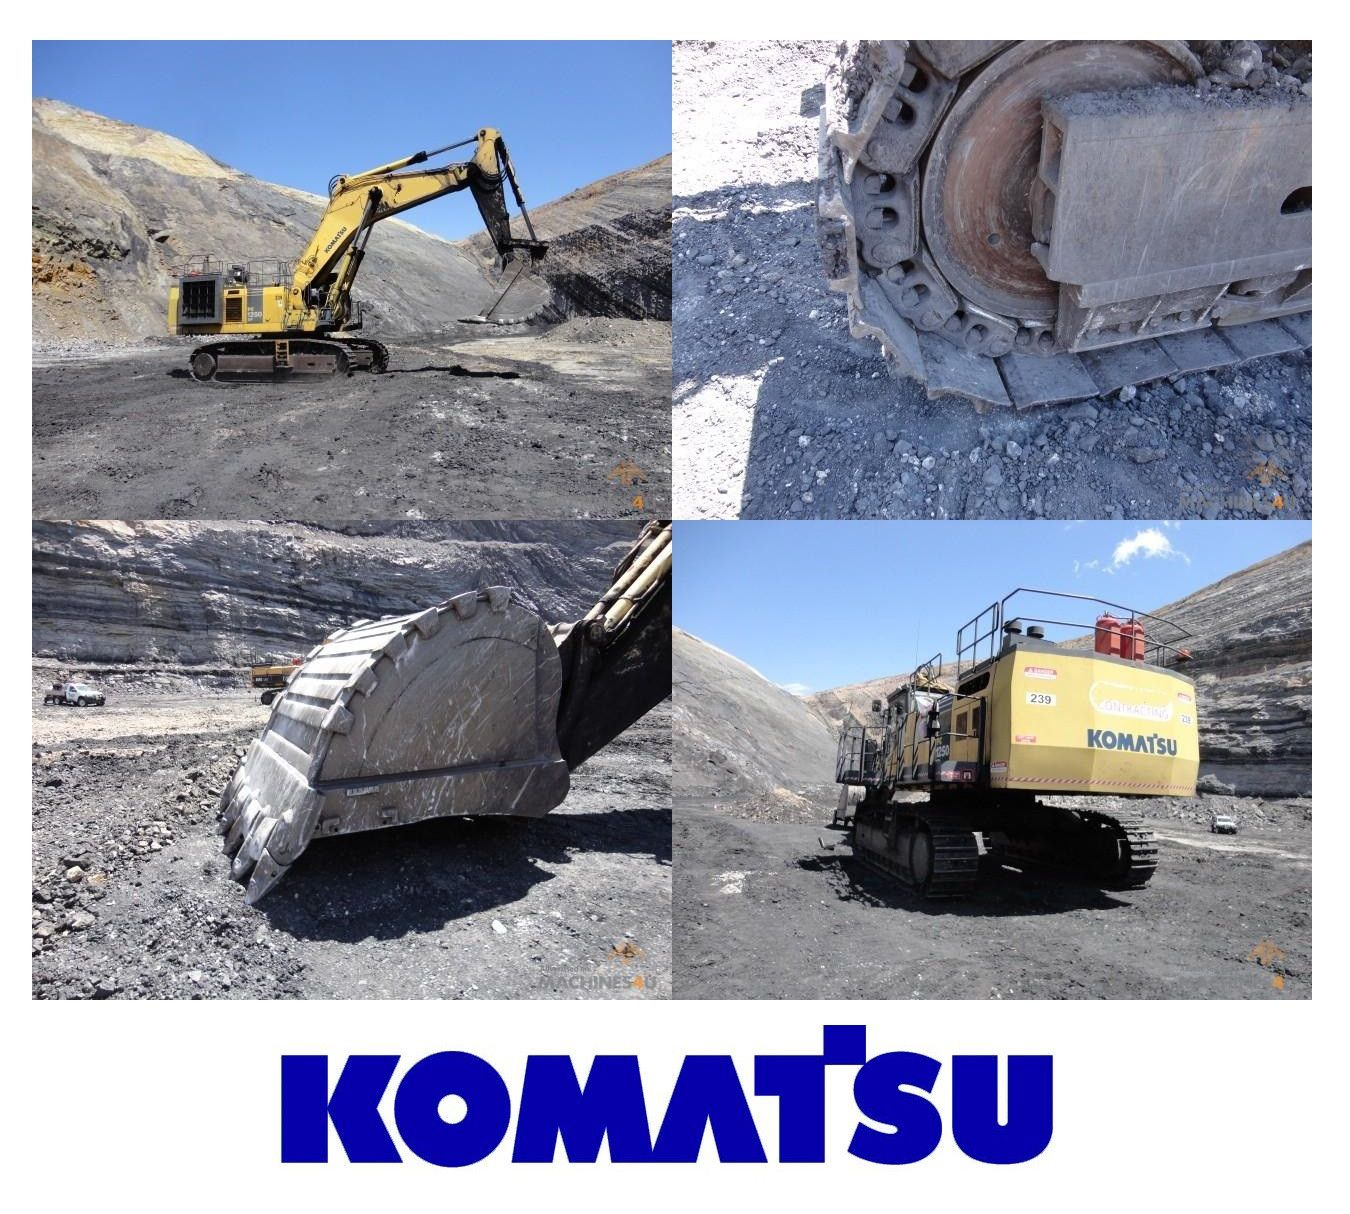 Are you familiar with #Komatsu #Excavators? This is the 2006 PC1250 SP-